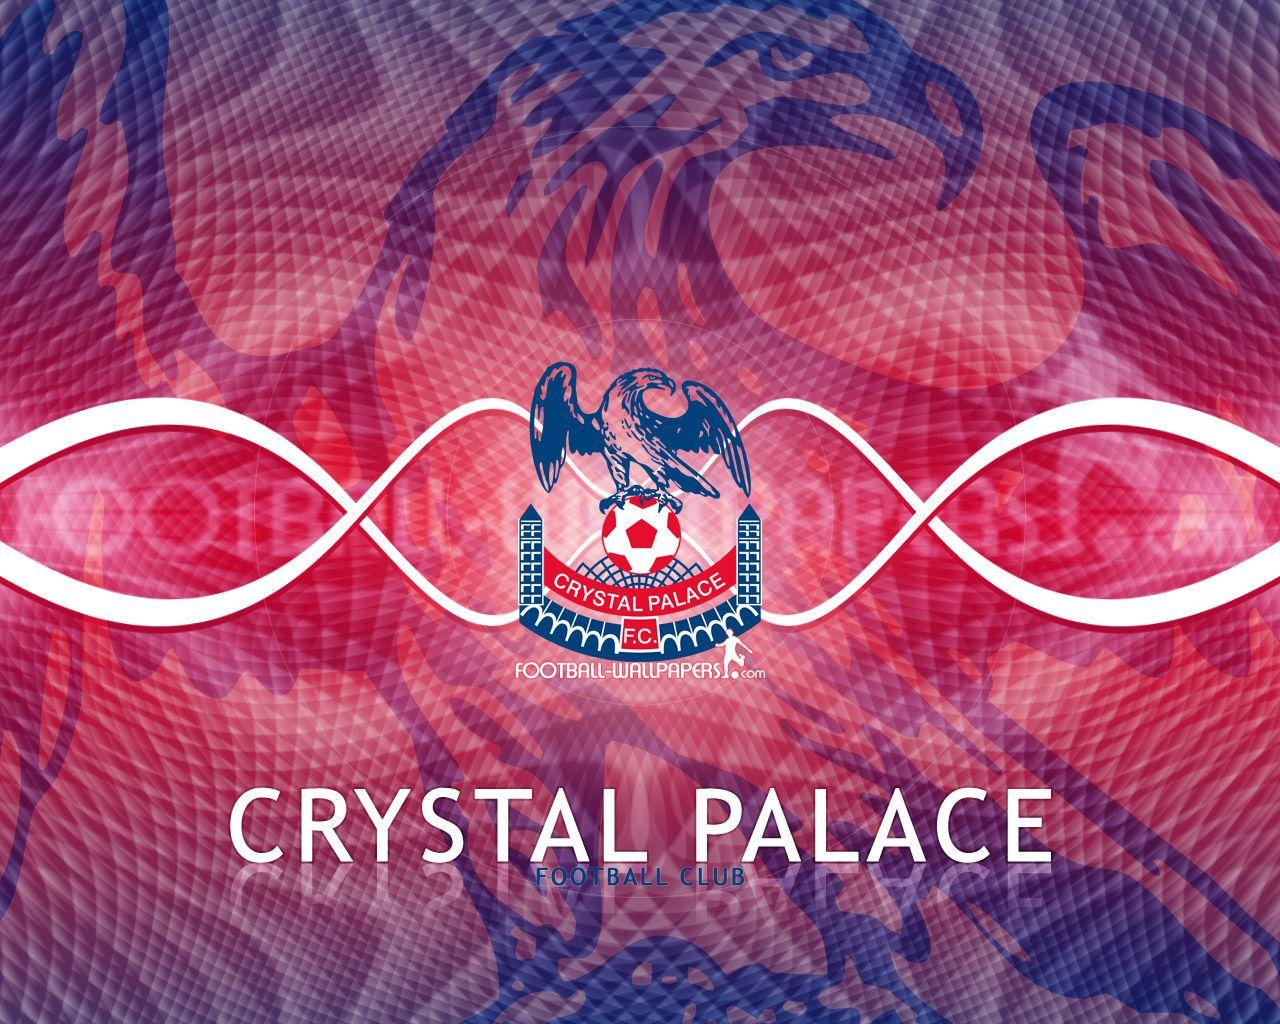 Crystal Palace Logo Rays Wallpaper Wallpapers: Players, Teams ...